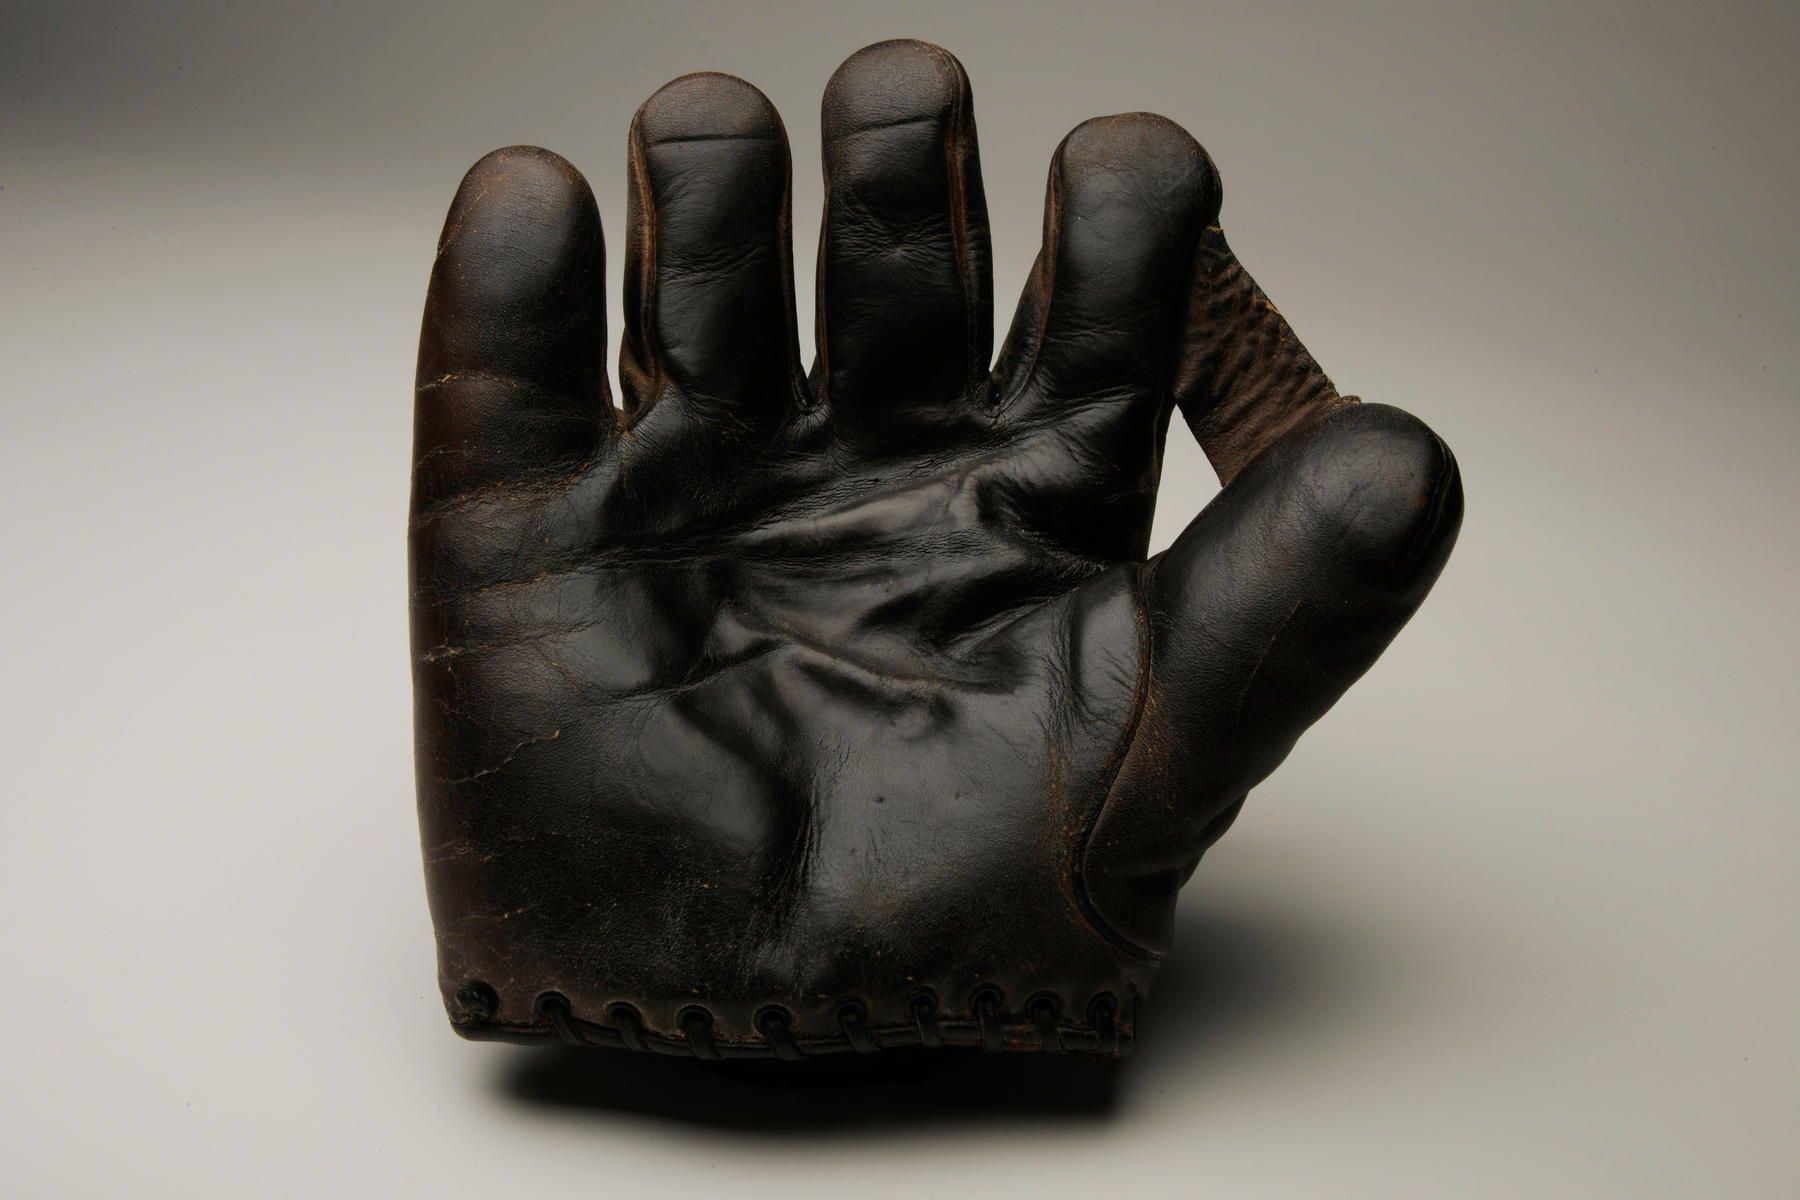 Glove used by Babe Ruth during the 1926 World Series. B-15-49b (Milo Stewart Jr. / National Baseball Hall of Fame)